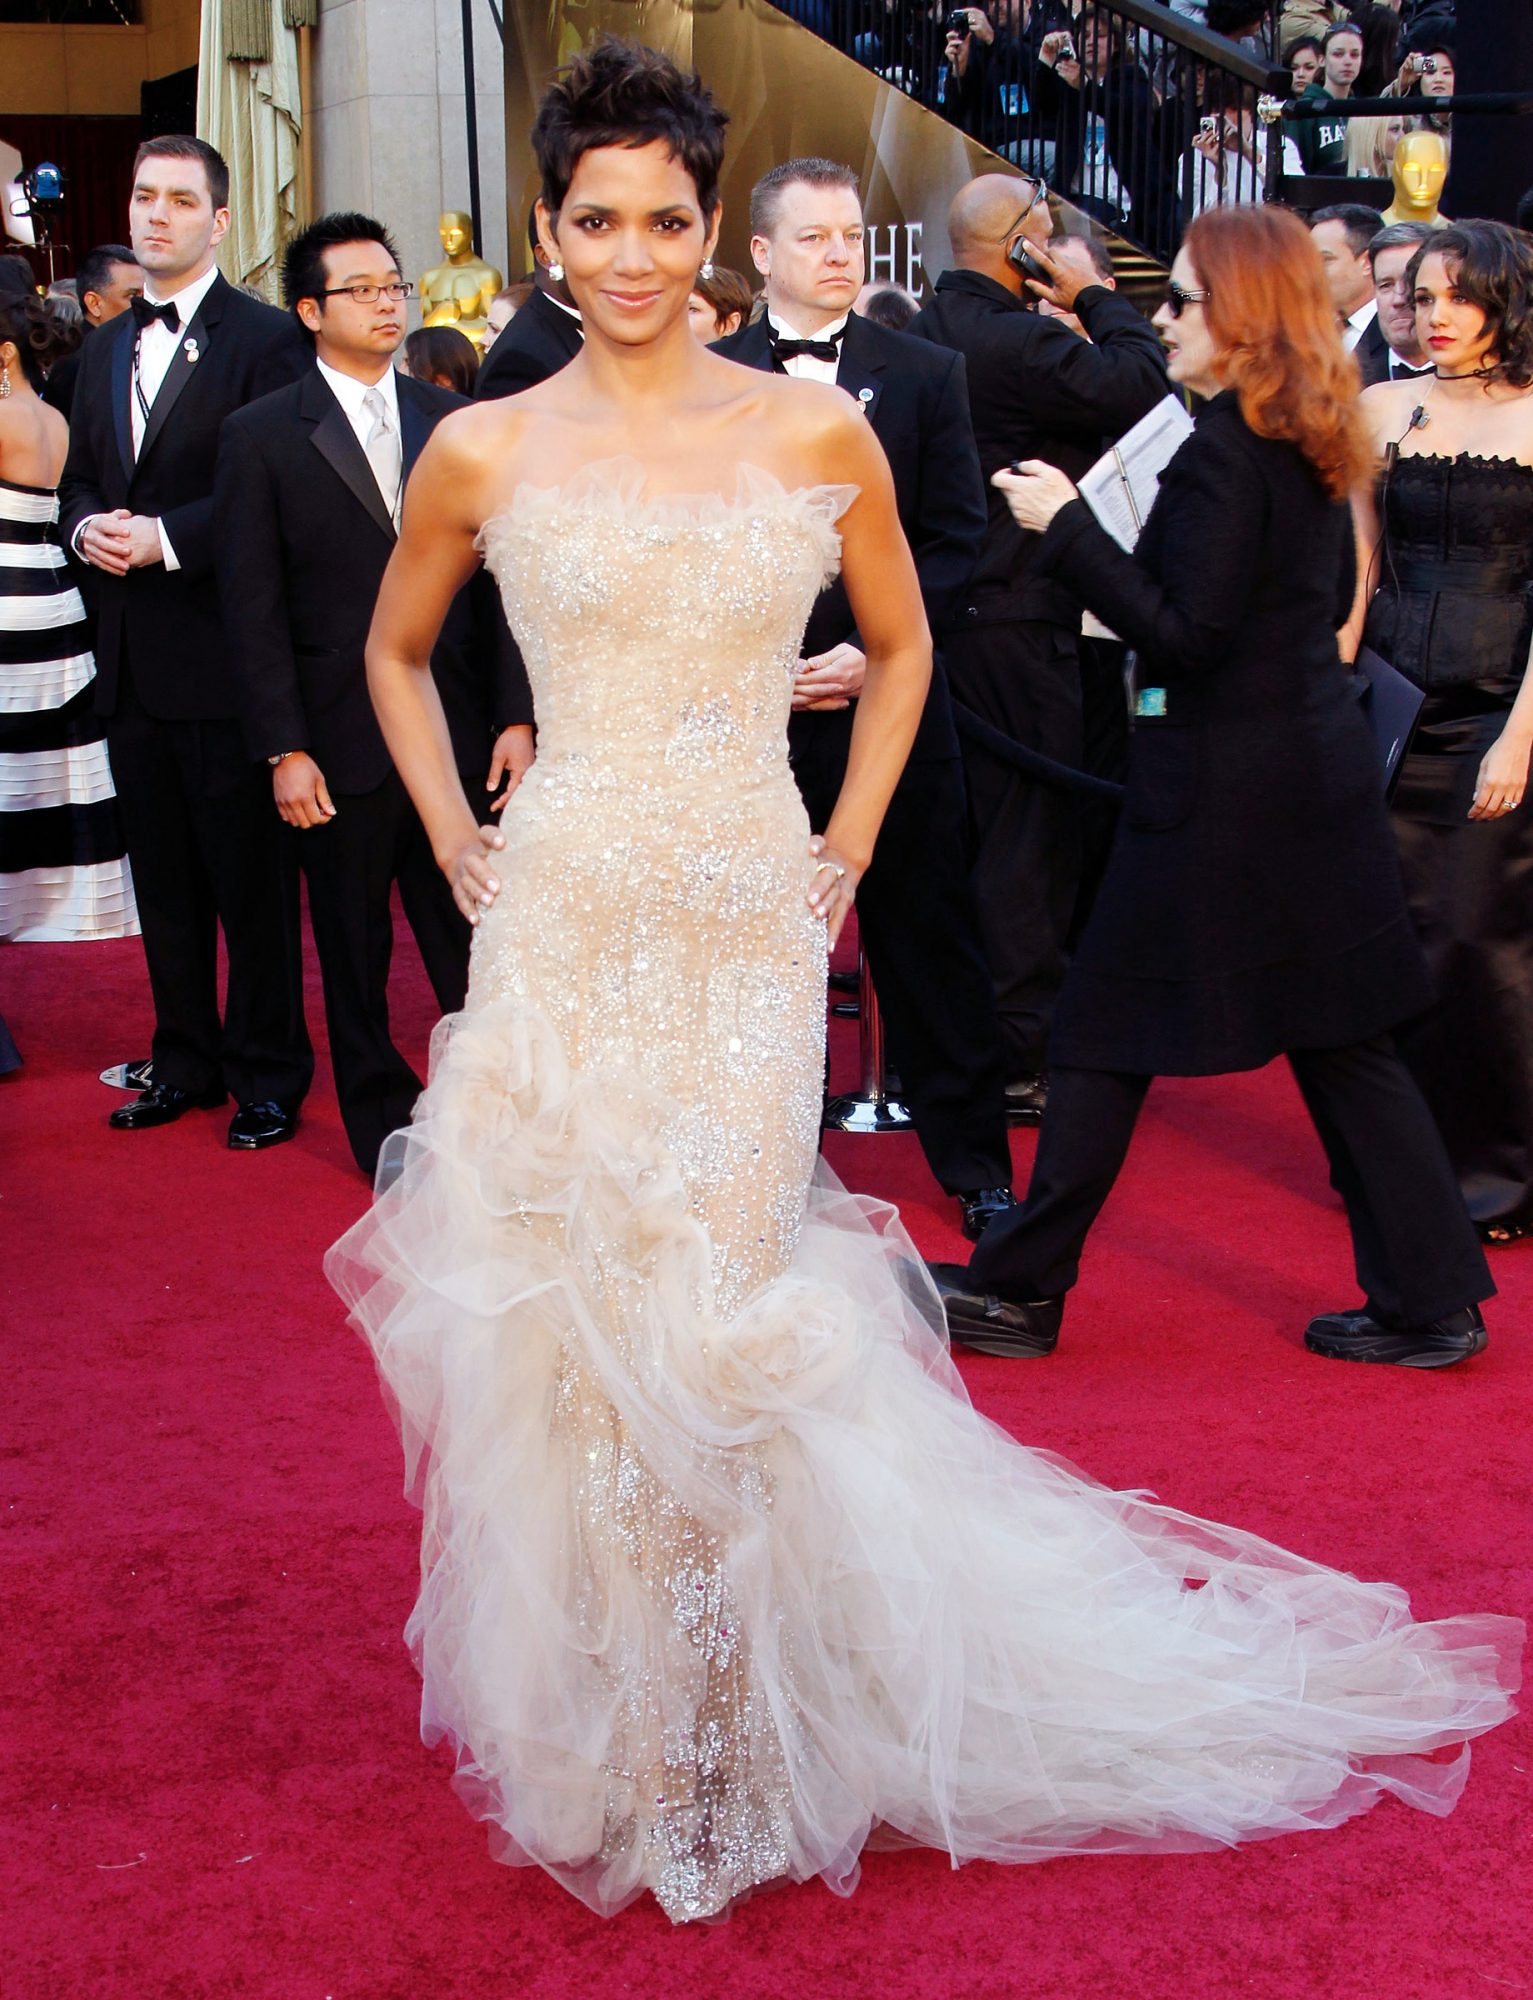 2011 Academy Awards, Halle Berry